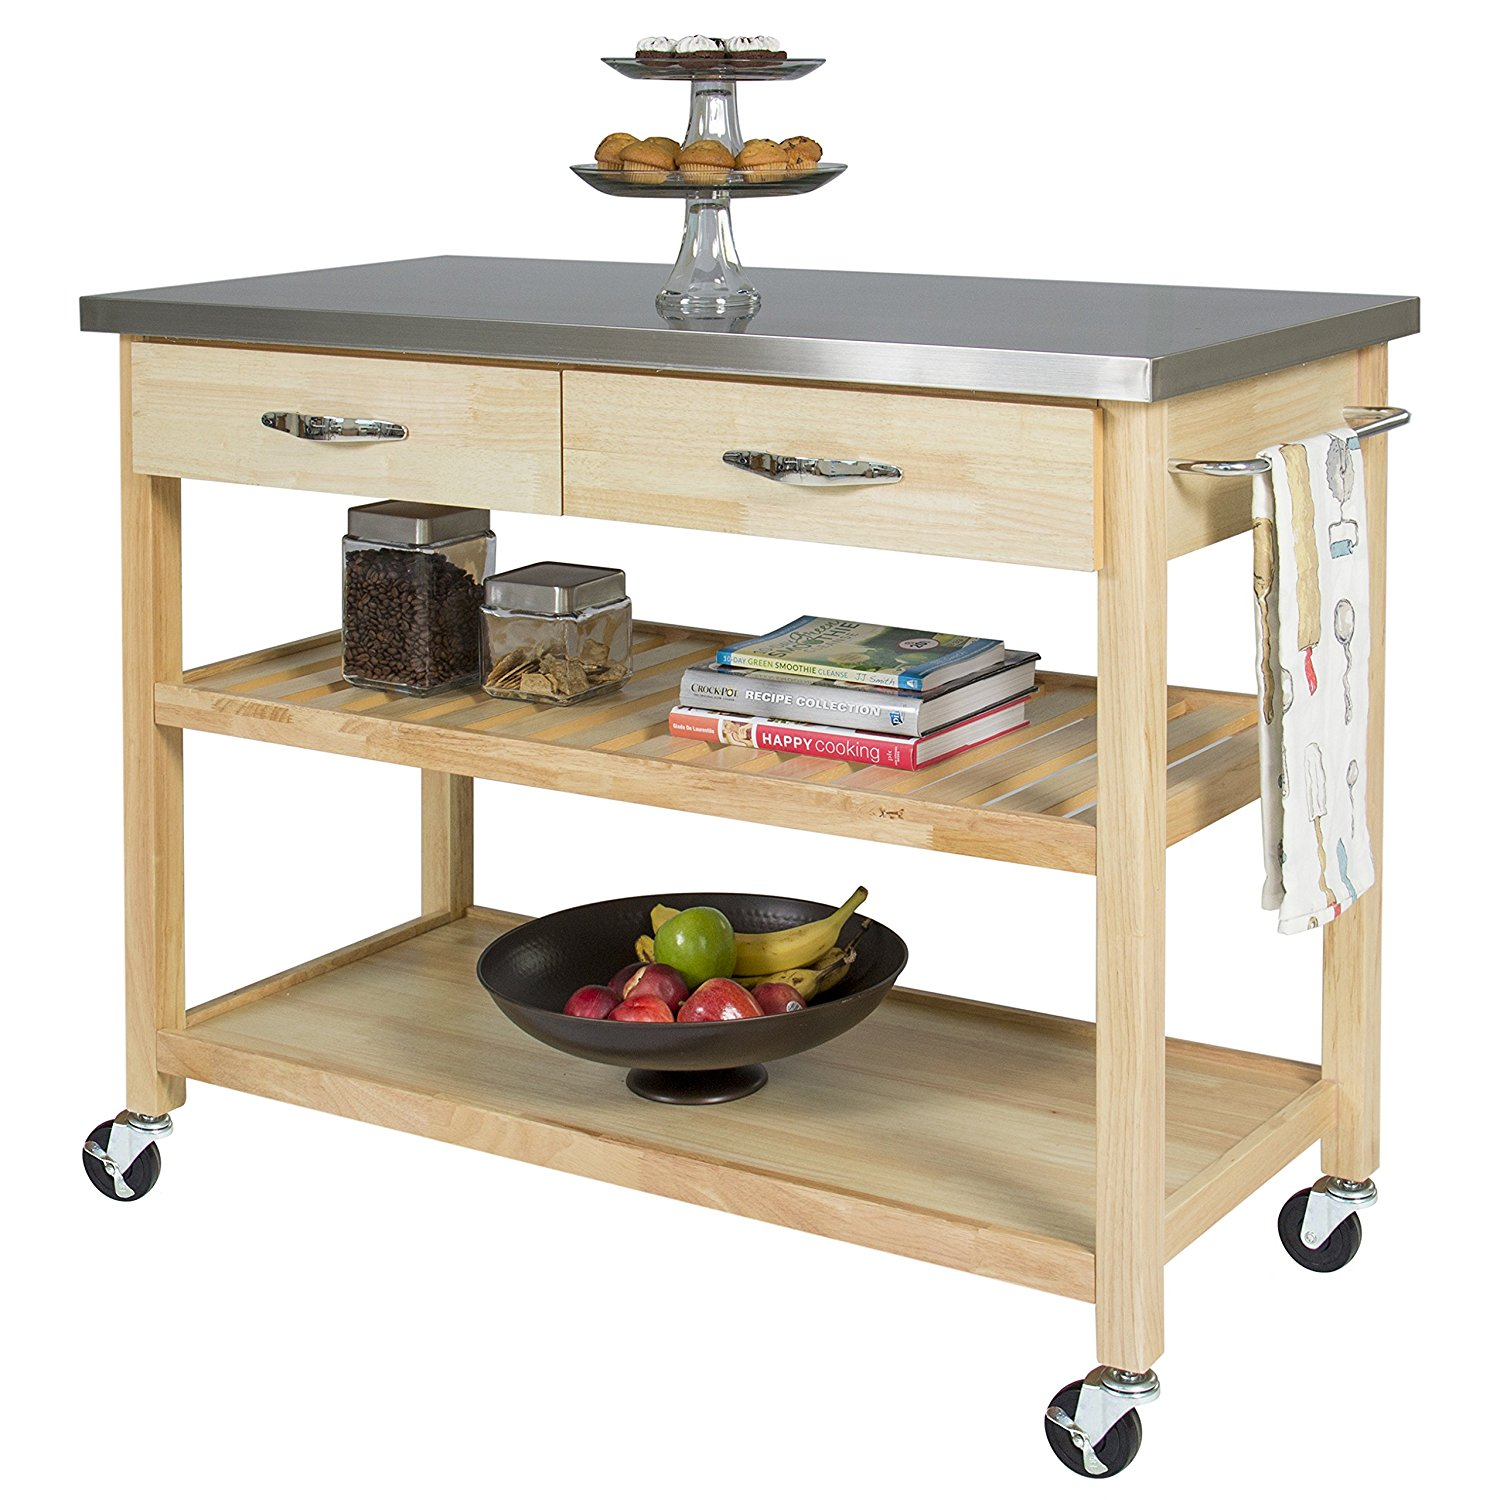 2018 Top 10 Best Mobile Kitchen Carts, Centers, Islands & Utility Tables